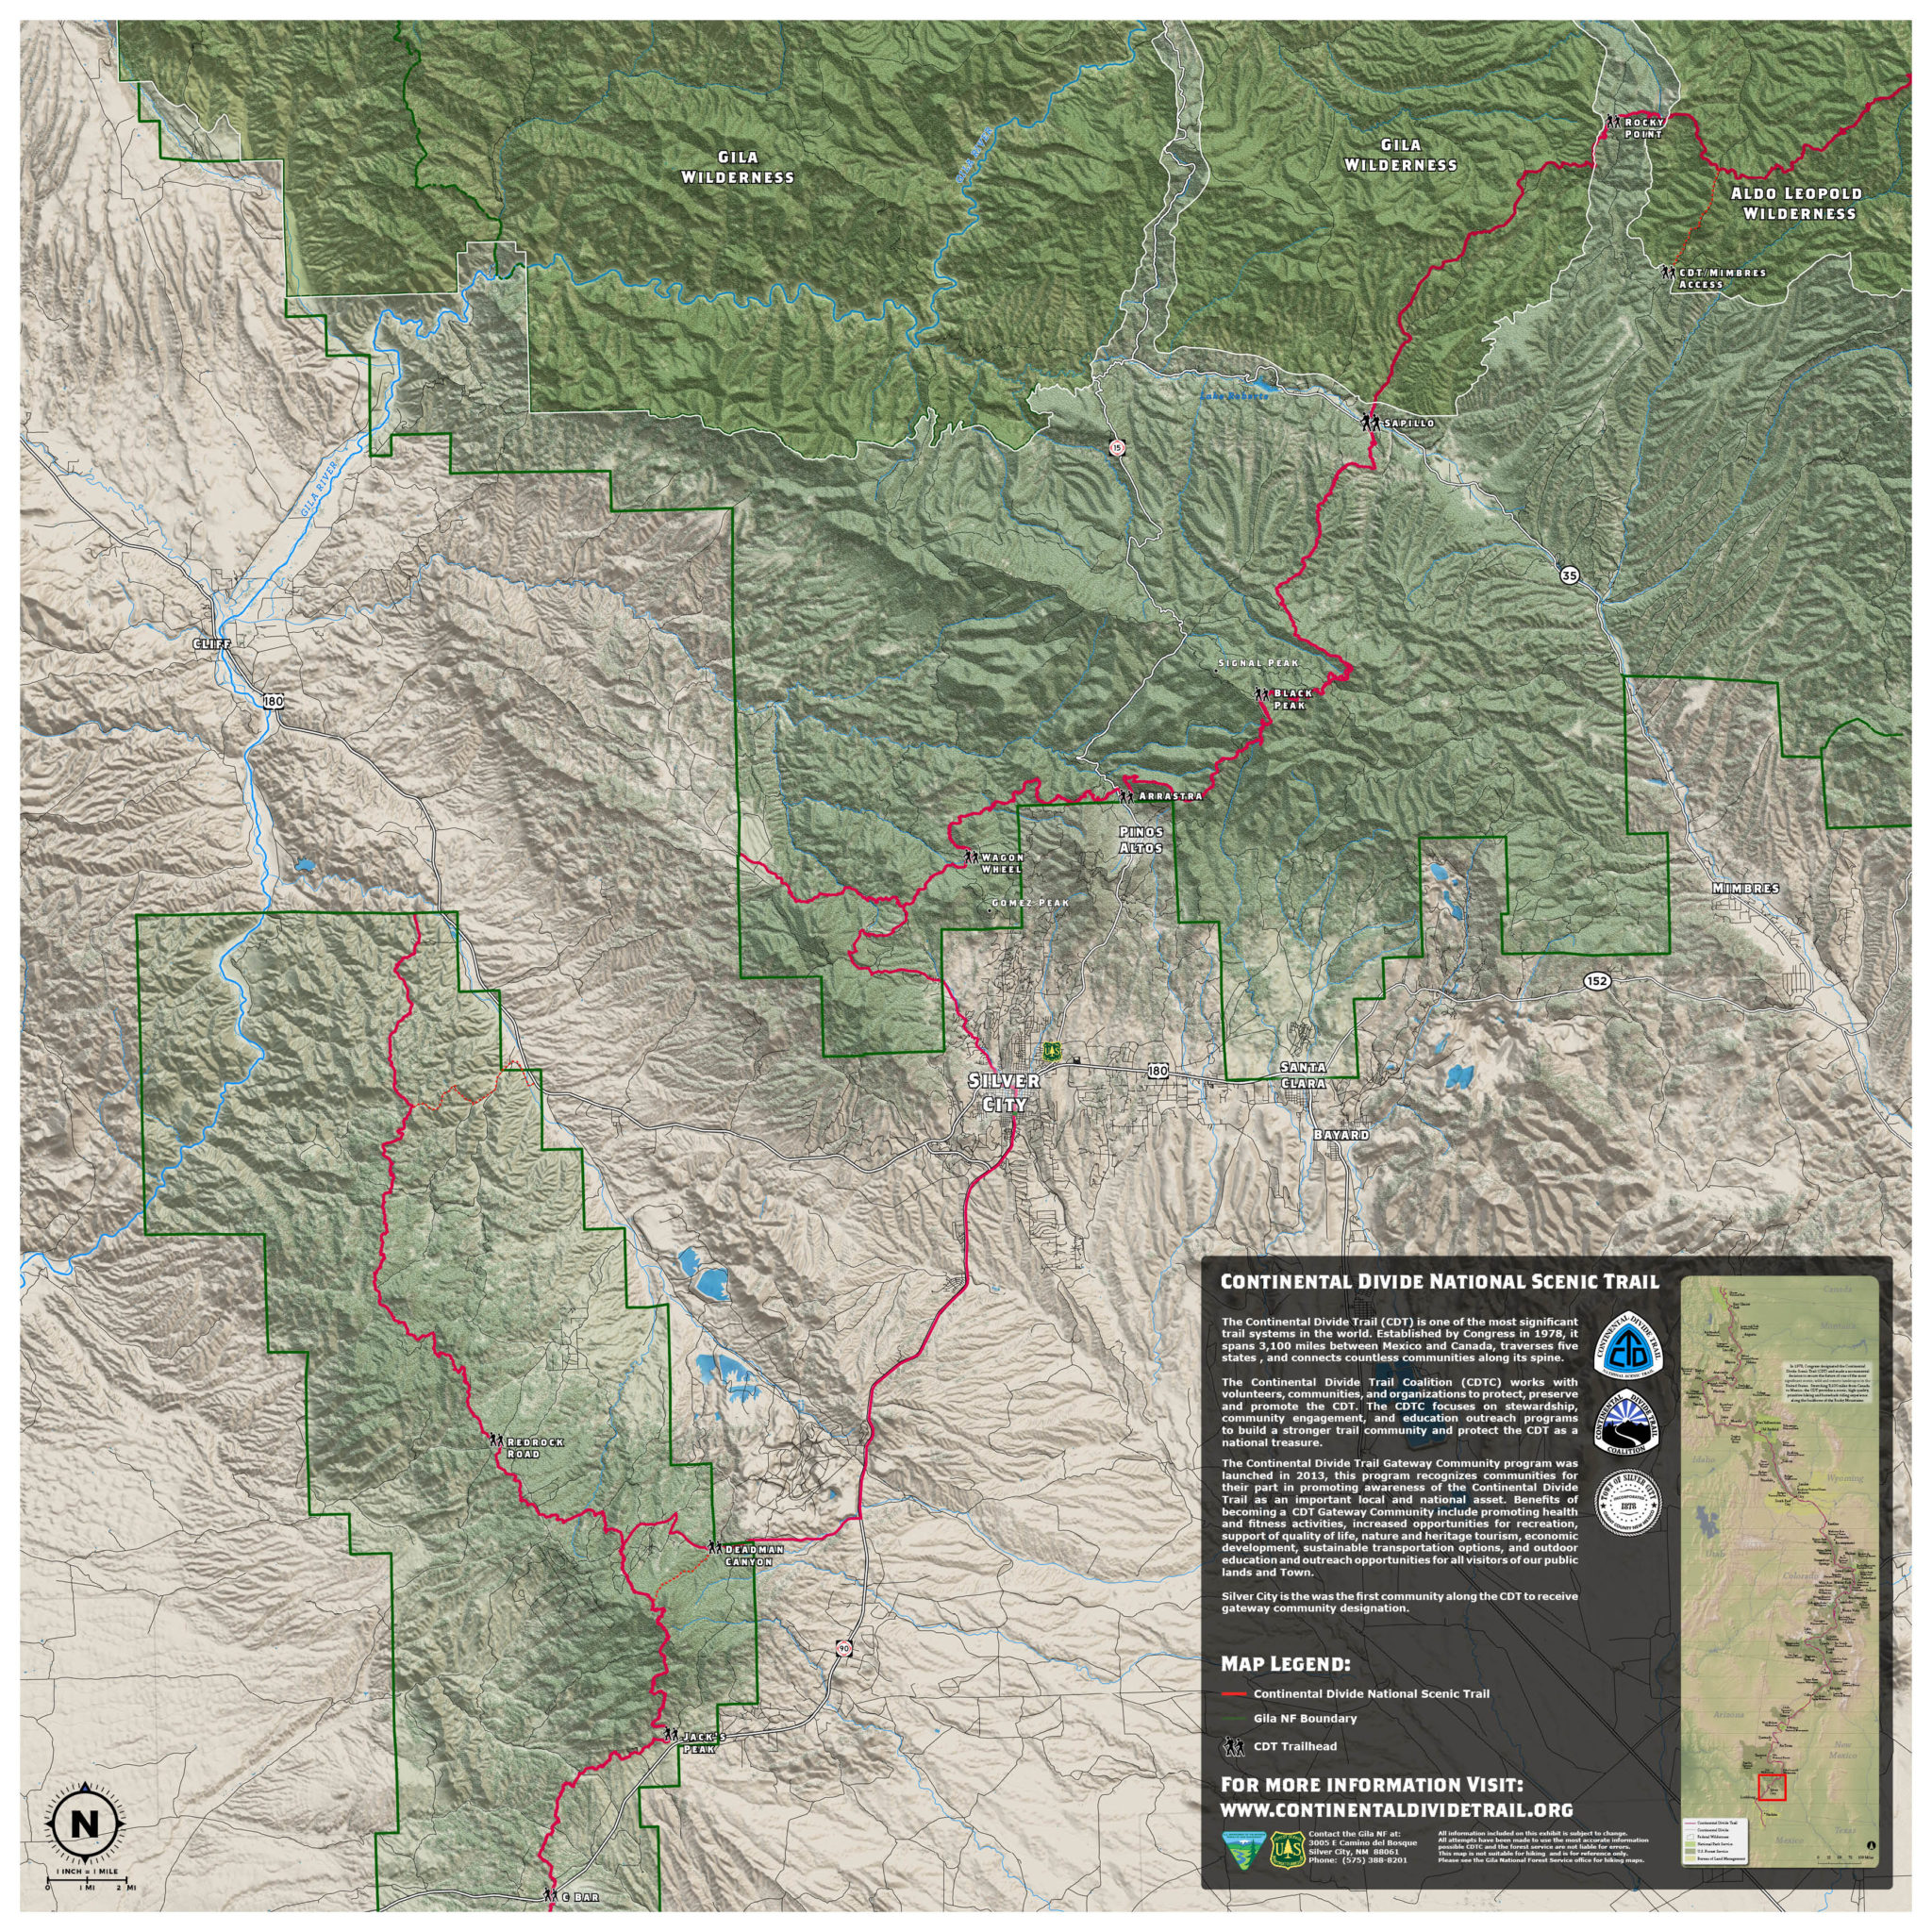 Silver City Continental Divide Trail Coalition